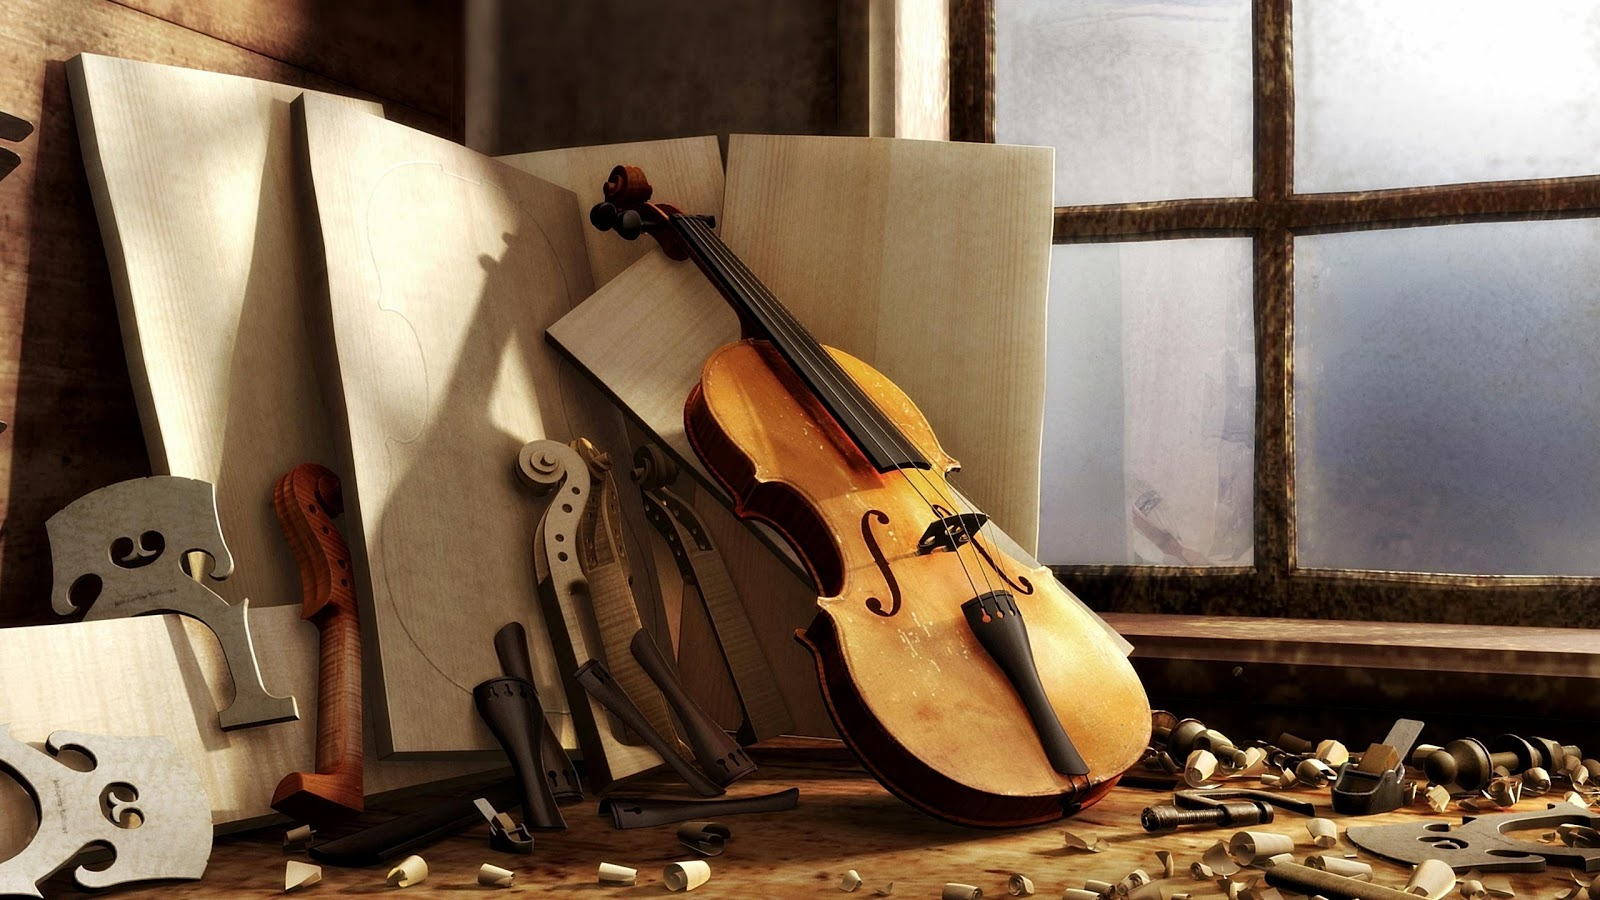 Violin Wallpaper: Android Apps On Google Play